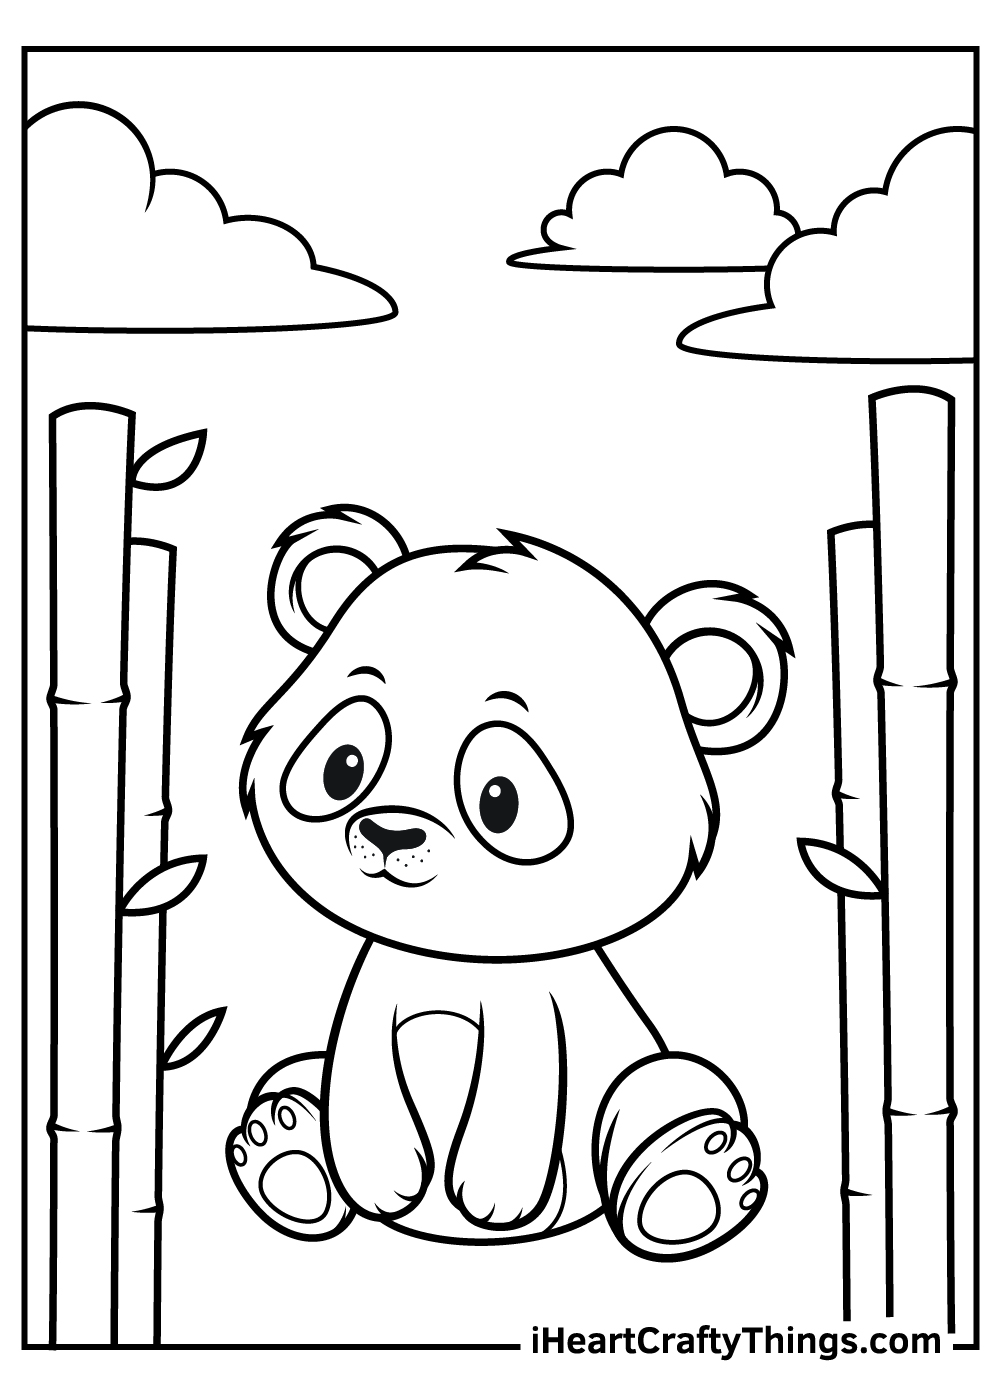 printable baby panda animals coloring pages